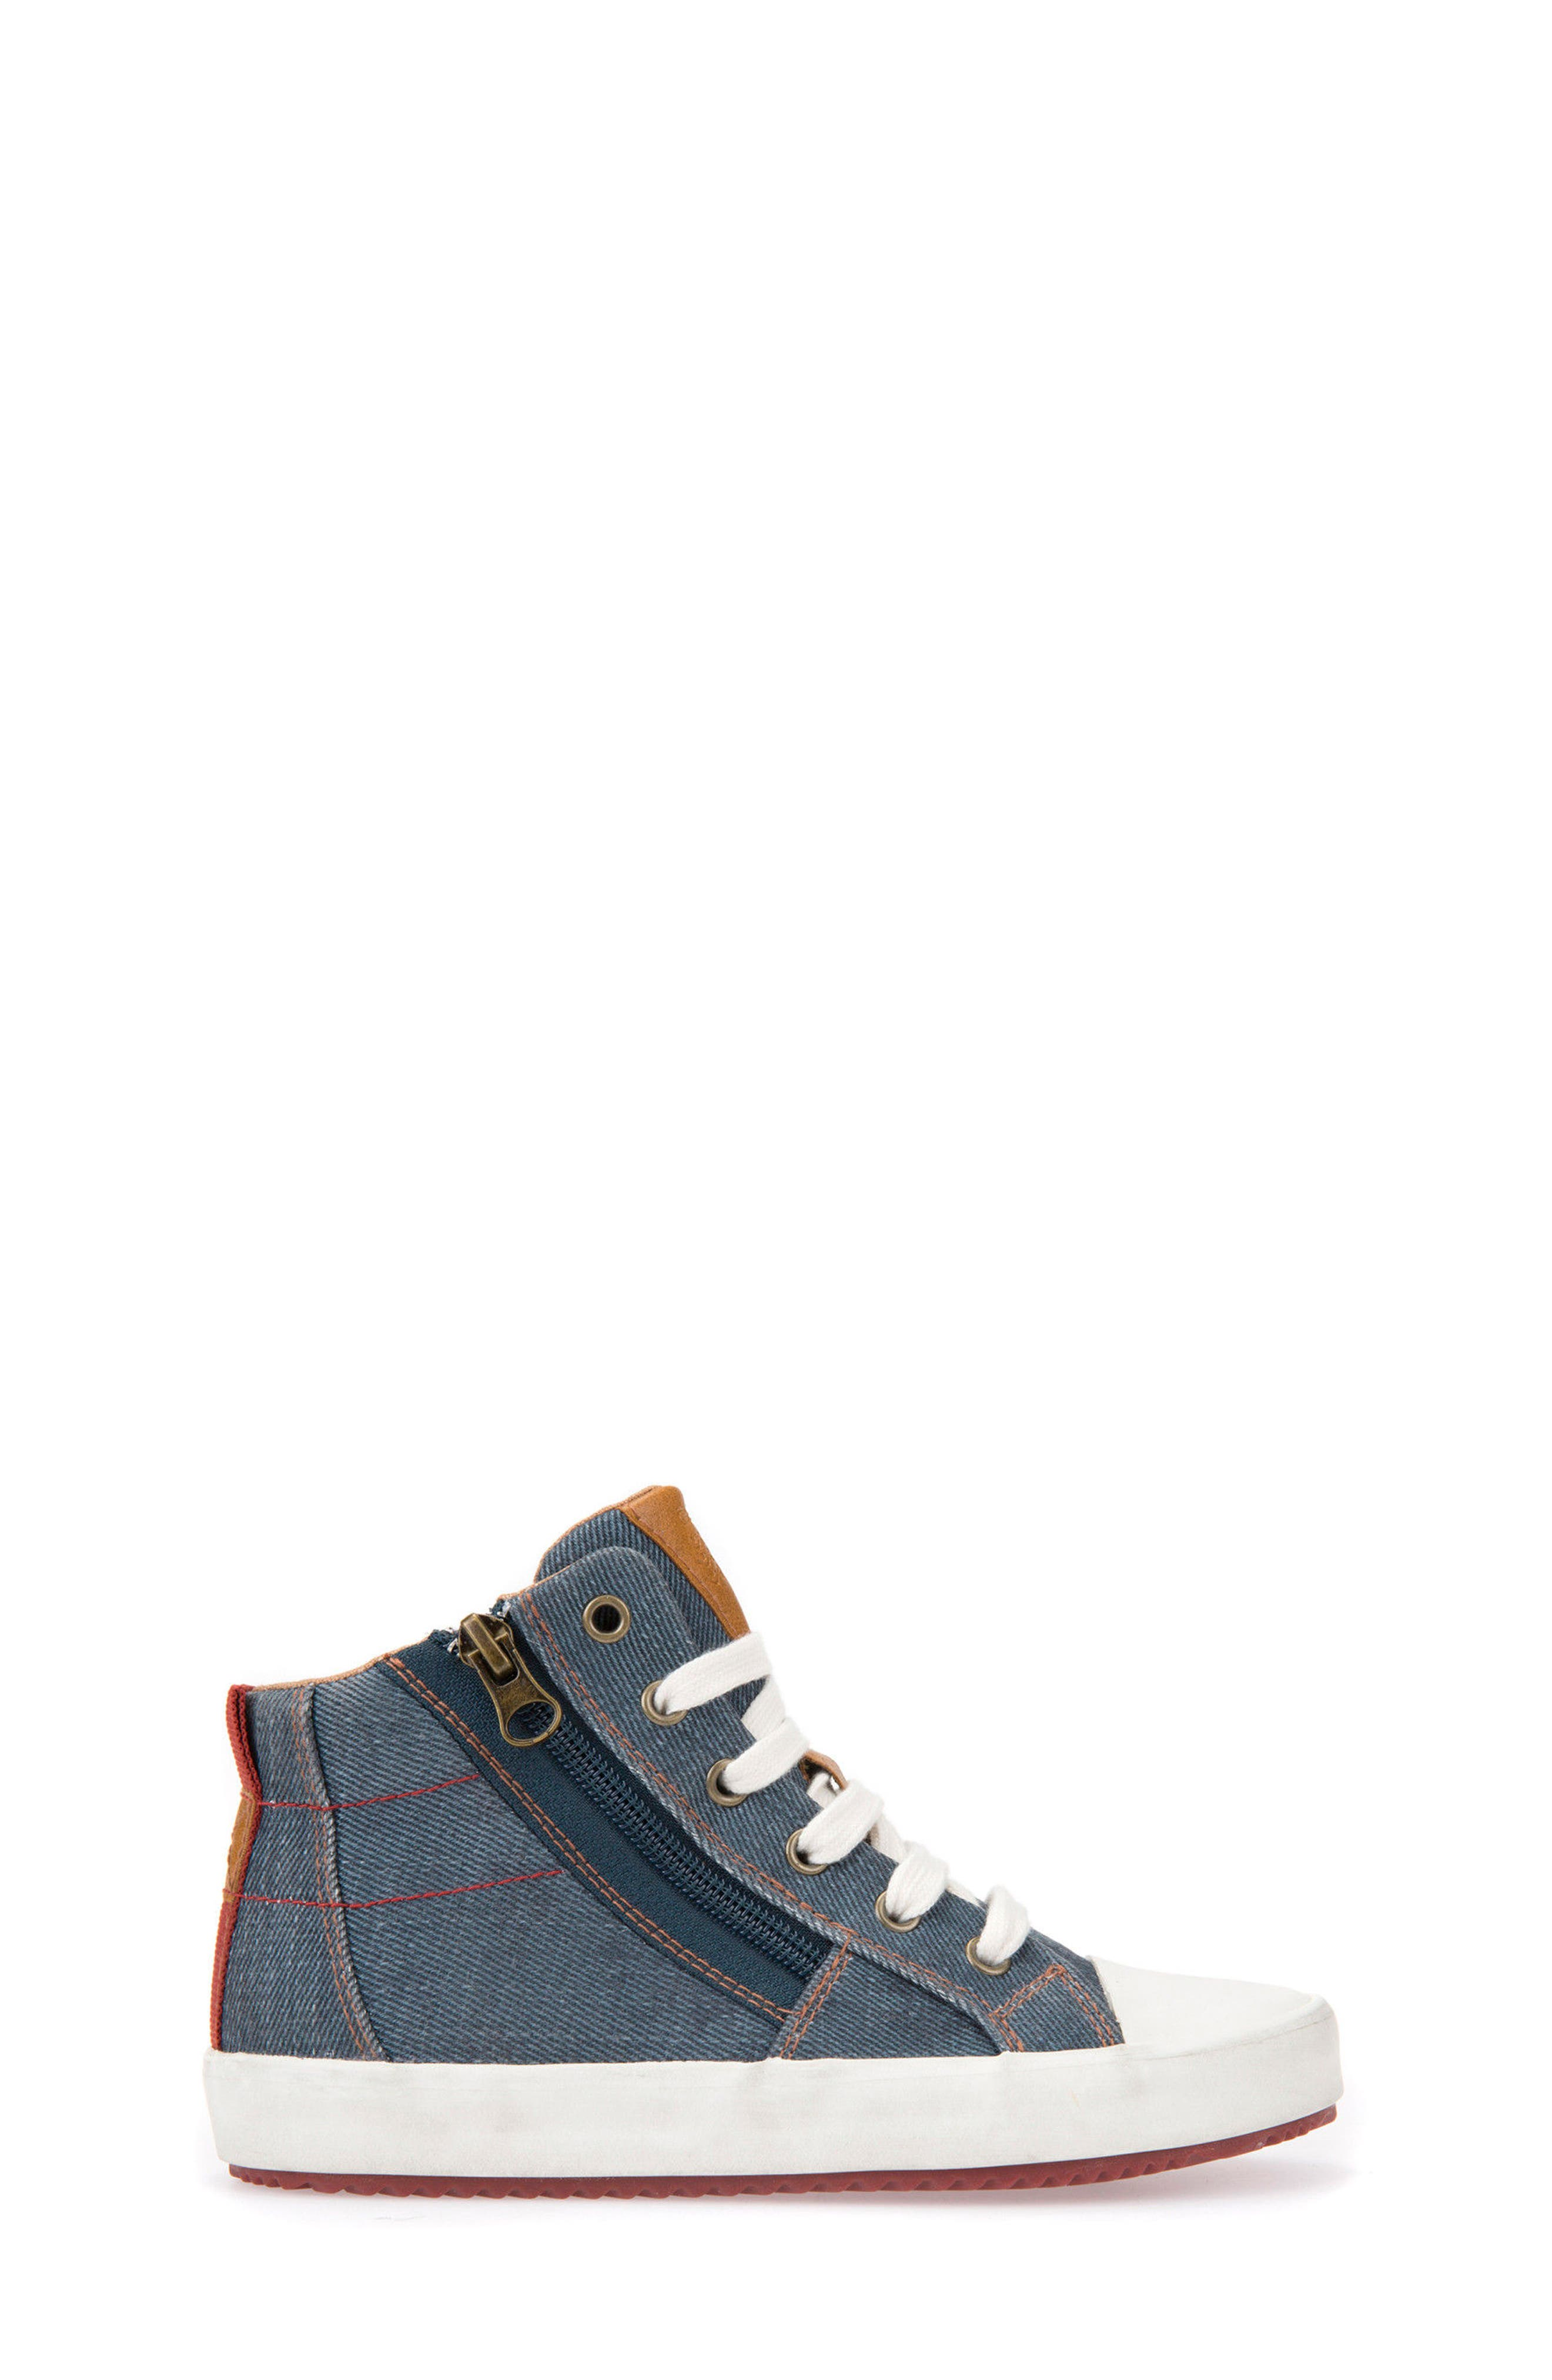 Alonisso High Top Sneaker,                             Alternate thumbnail 3, color,                             BLUE/ DARK RED